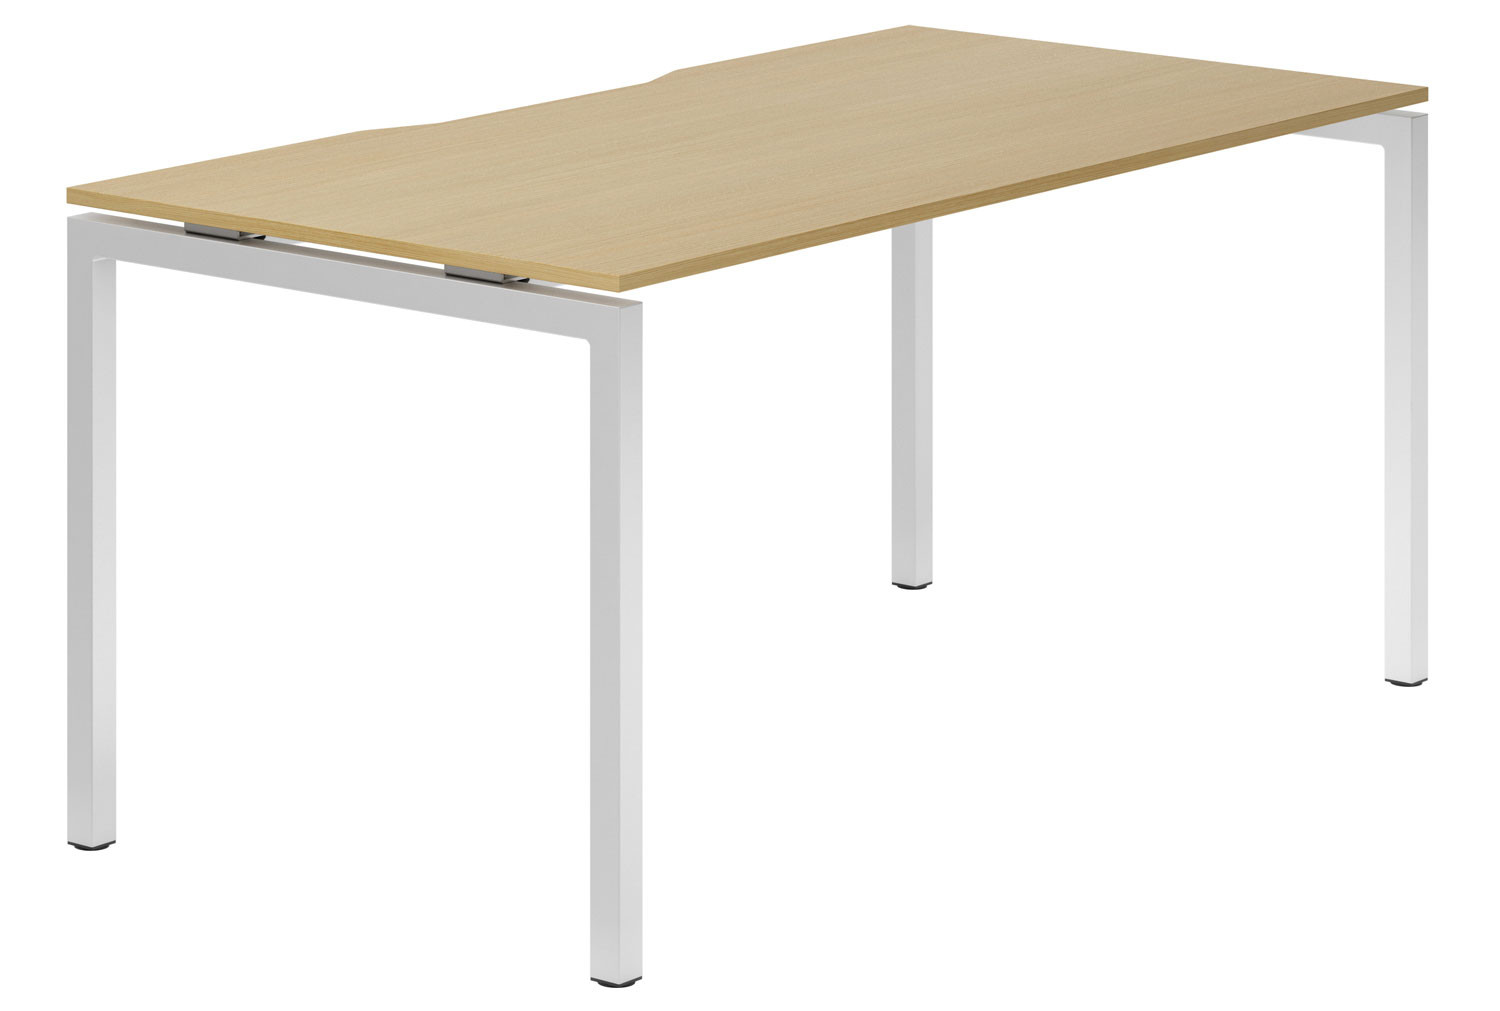 Lozano H-Leg Single Bench Desk (Natural Oak)